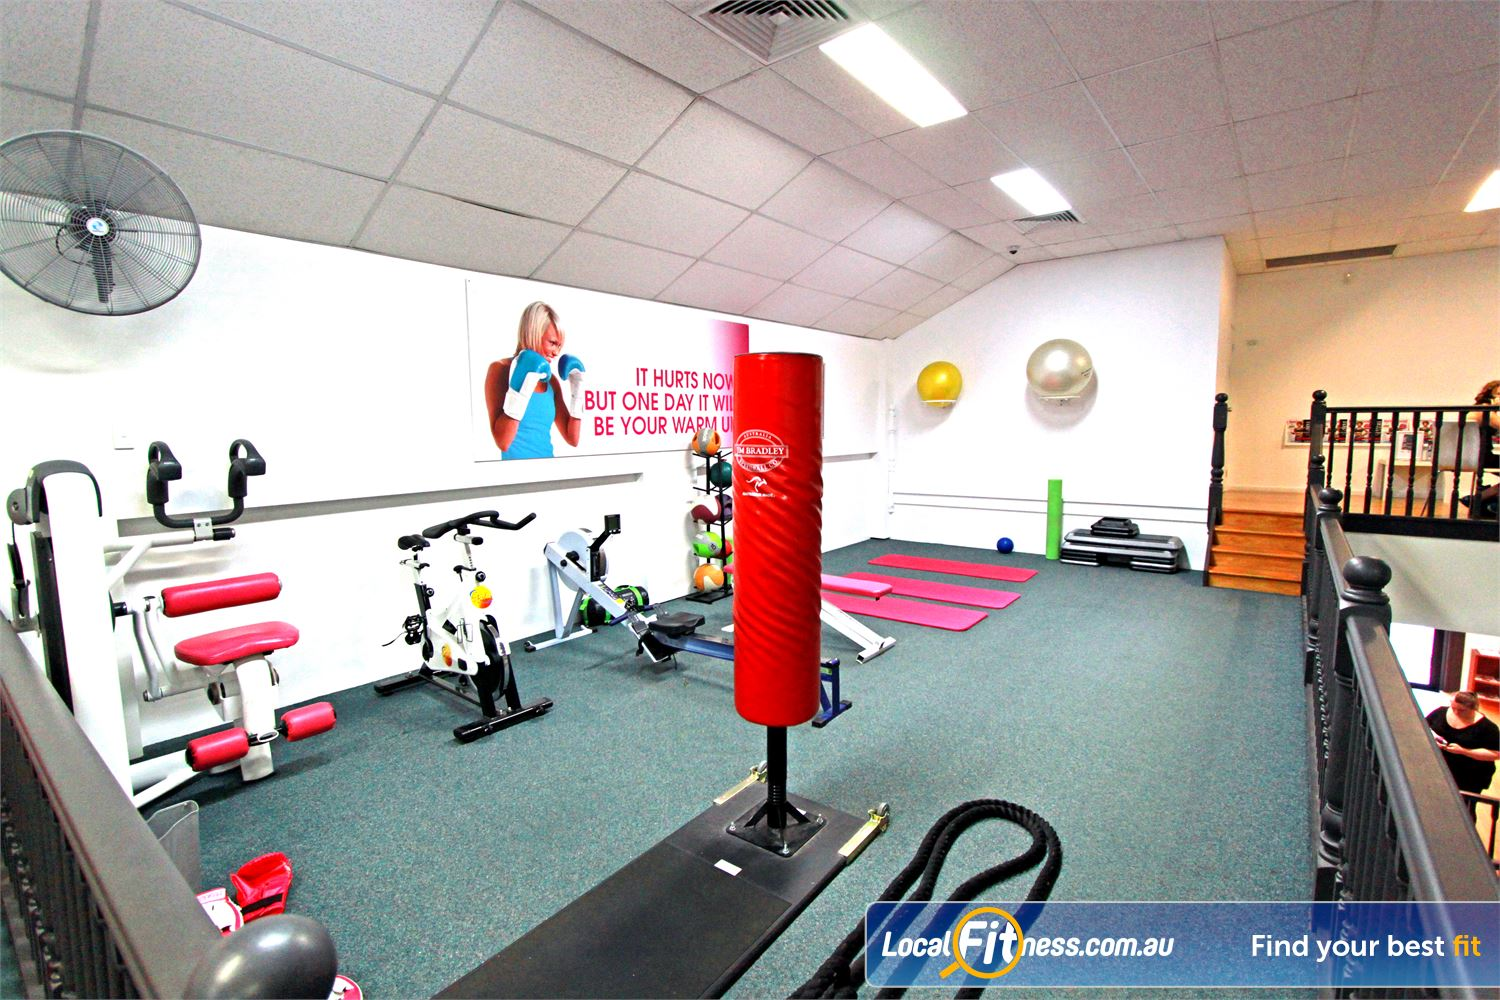 Fernwood Fitness Southland Near Mentone Get into High intensity training with boxing, ropes, kettlebell and more.